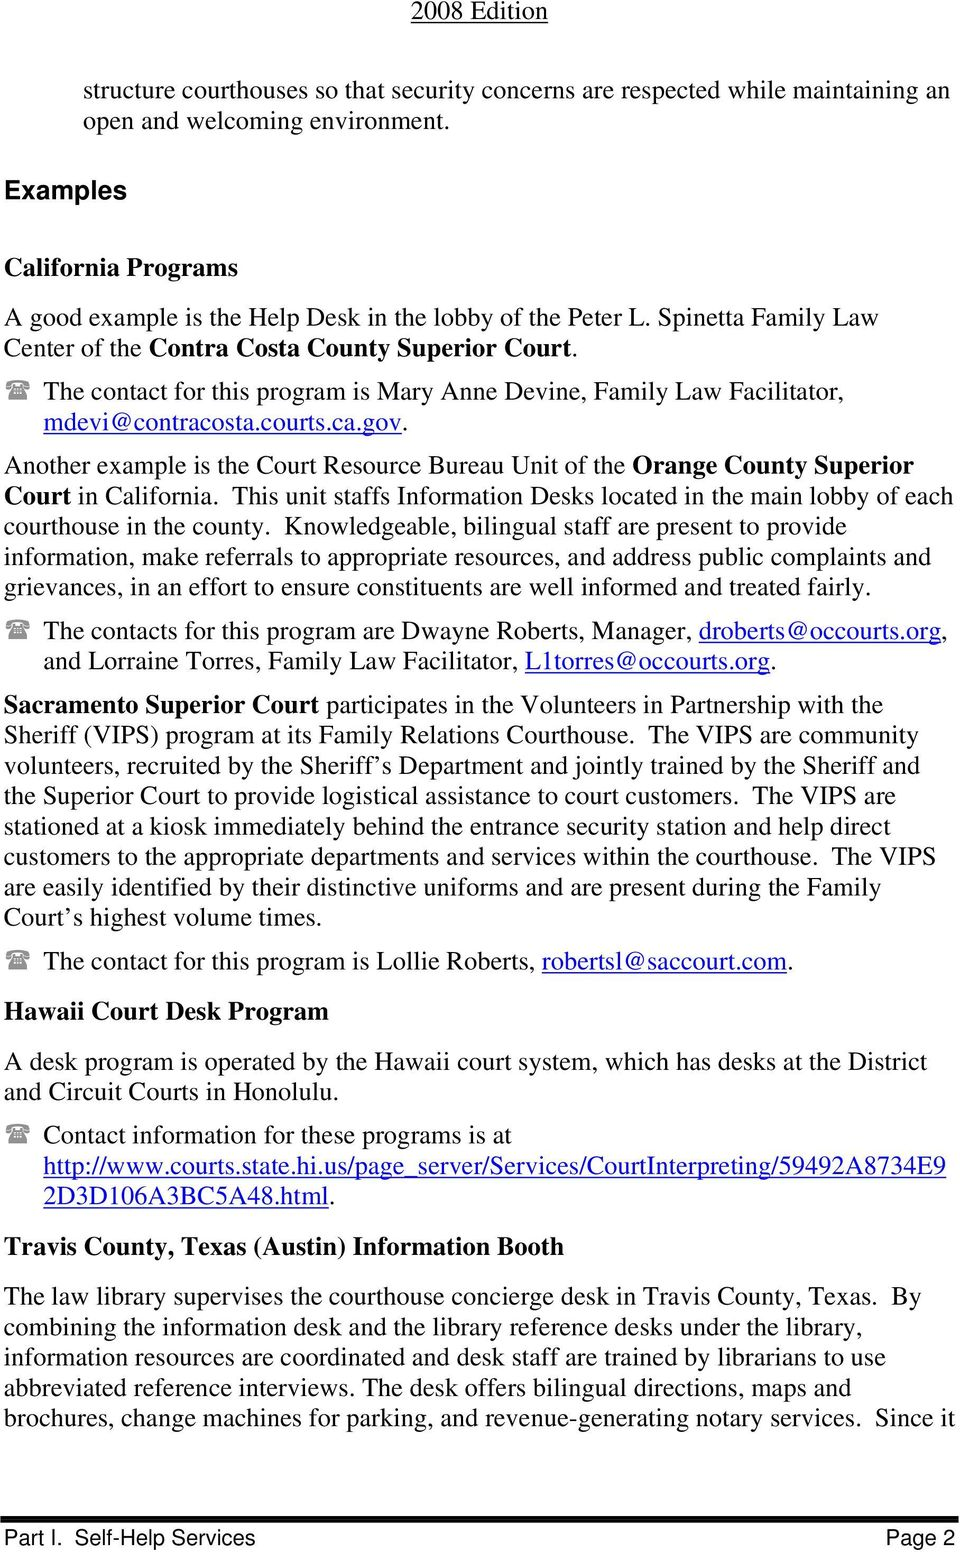 The contact for this program is Mary Anne Devine, Family Law Facilitator, mdevi@contracosta.courts.ca.gov.